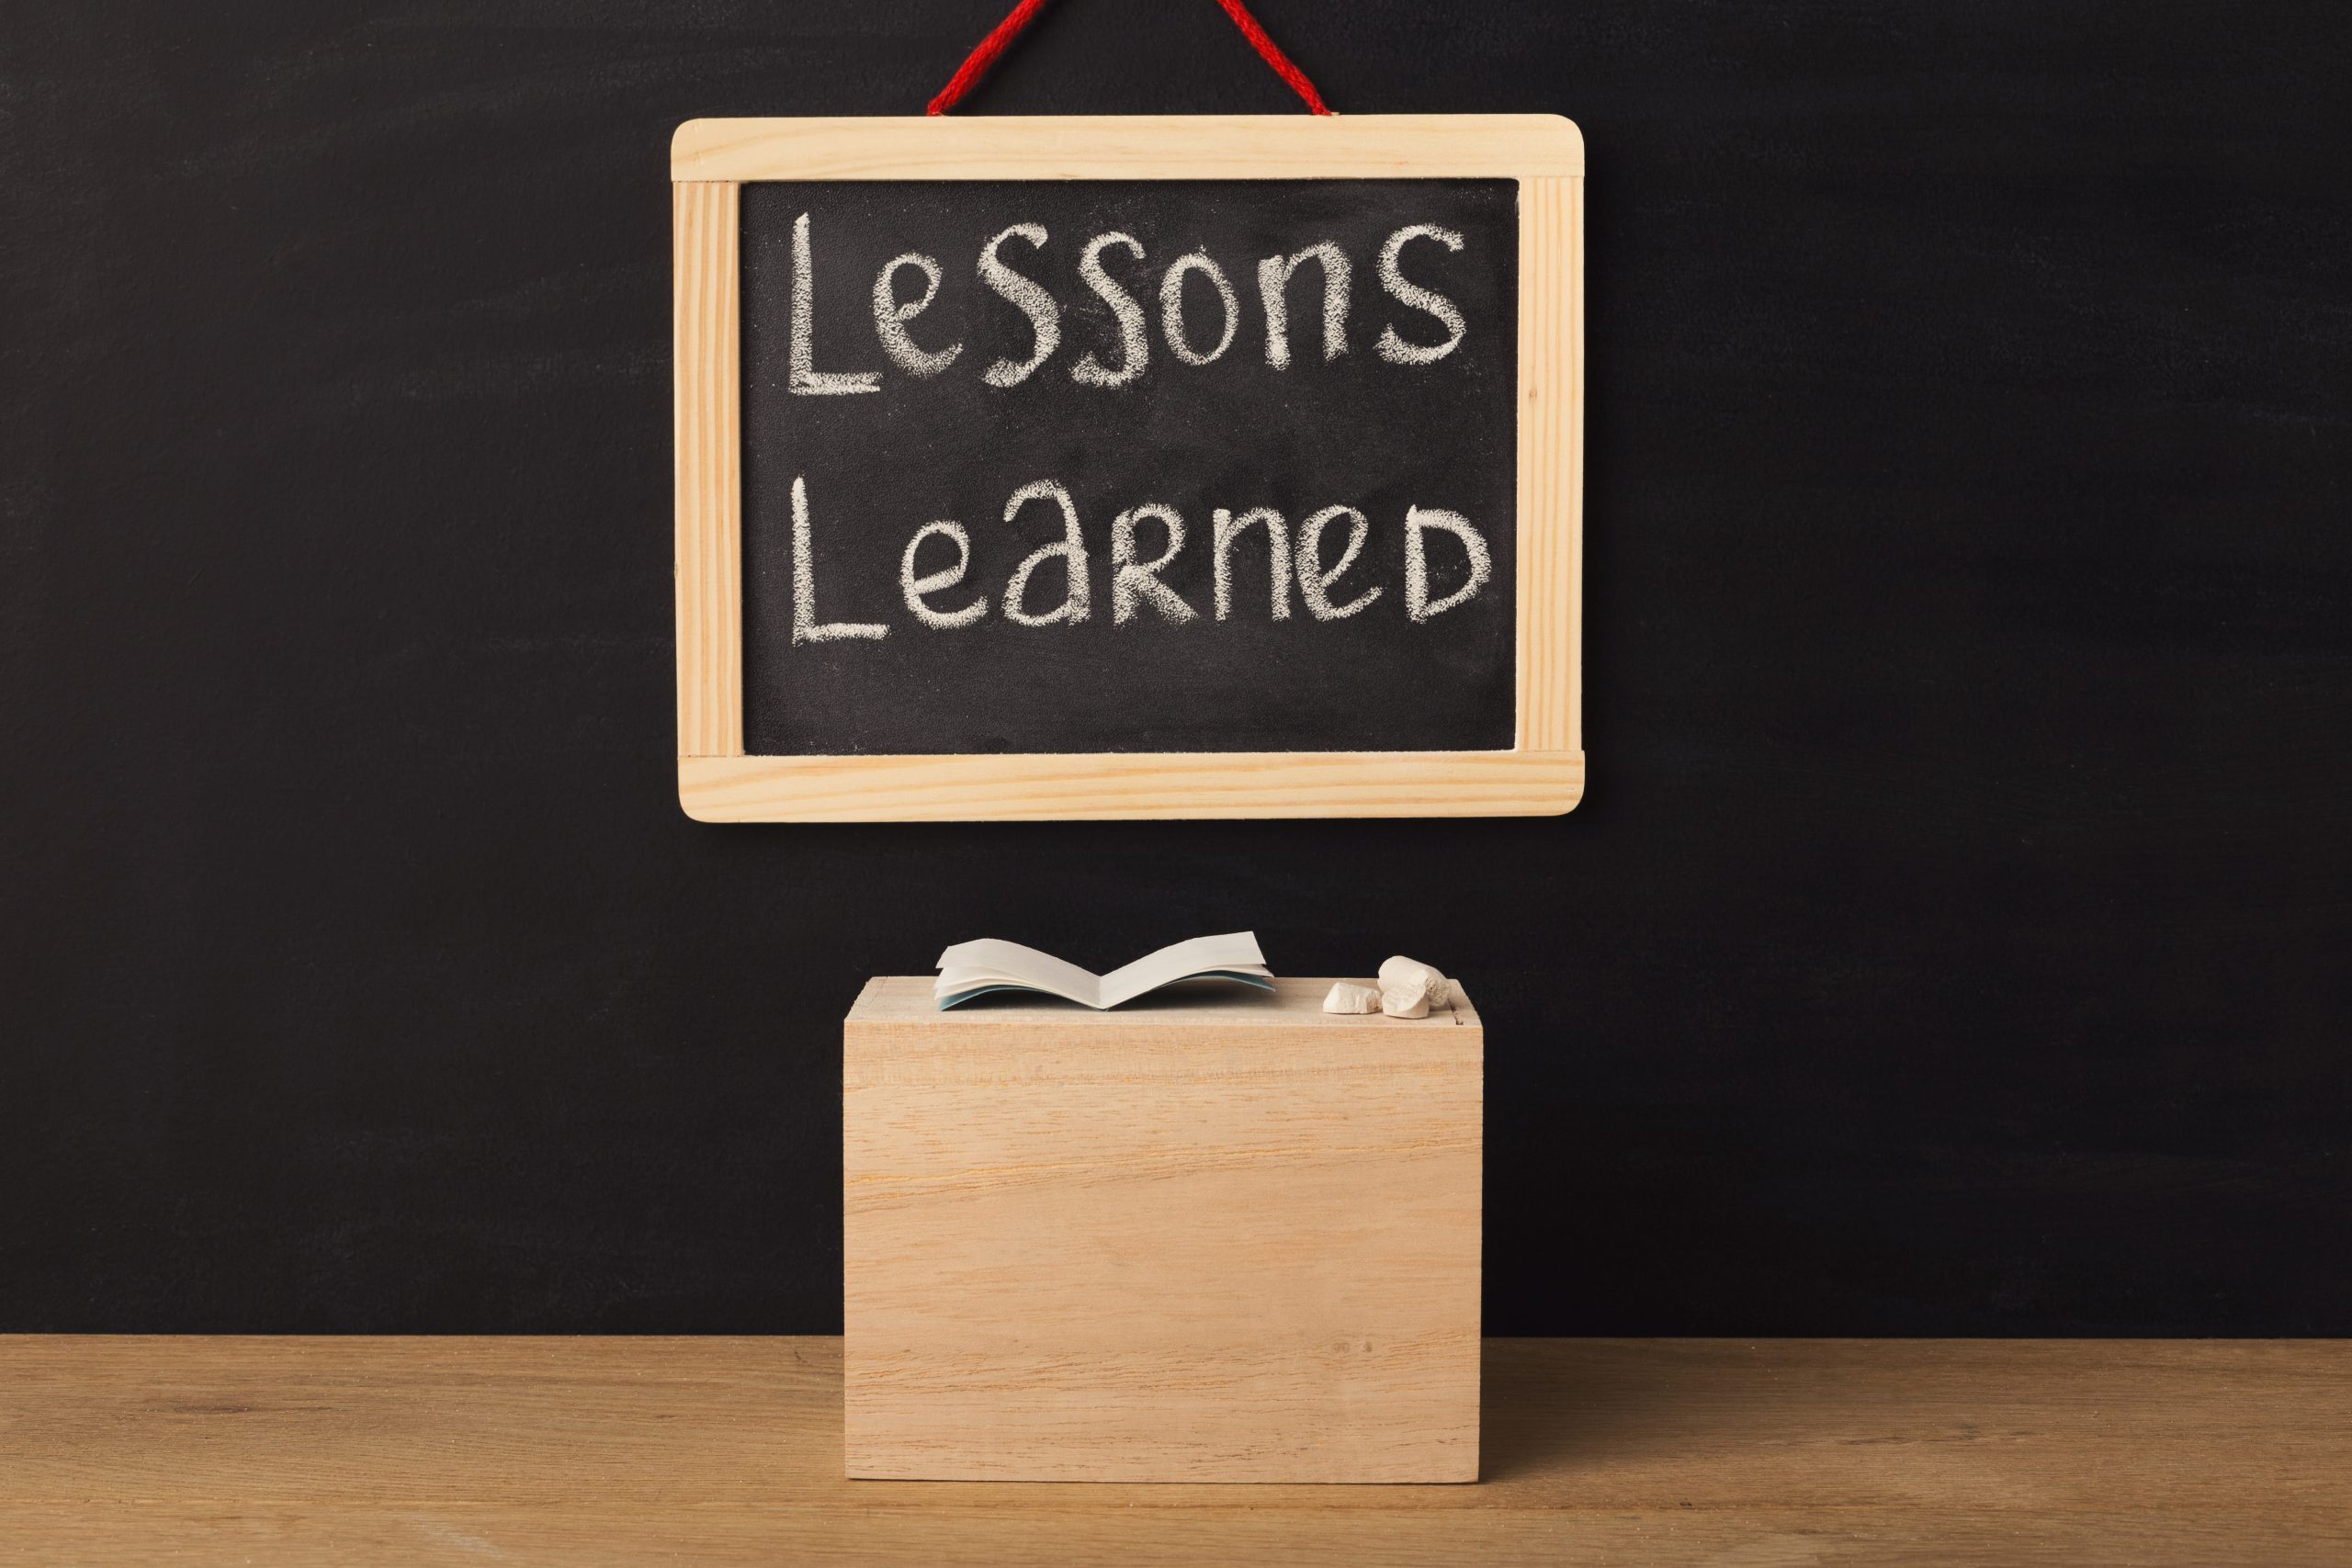 https://depositphotos.com/189494614/stock-photo-word-lessons-learned-written-on.html